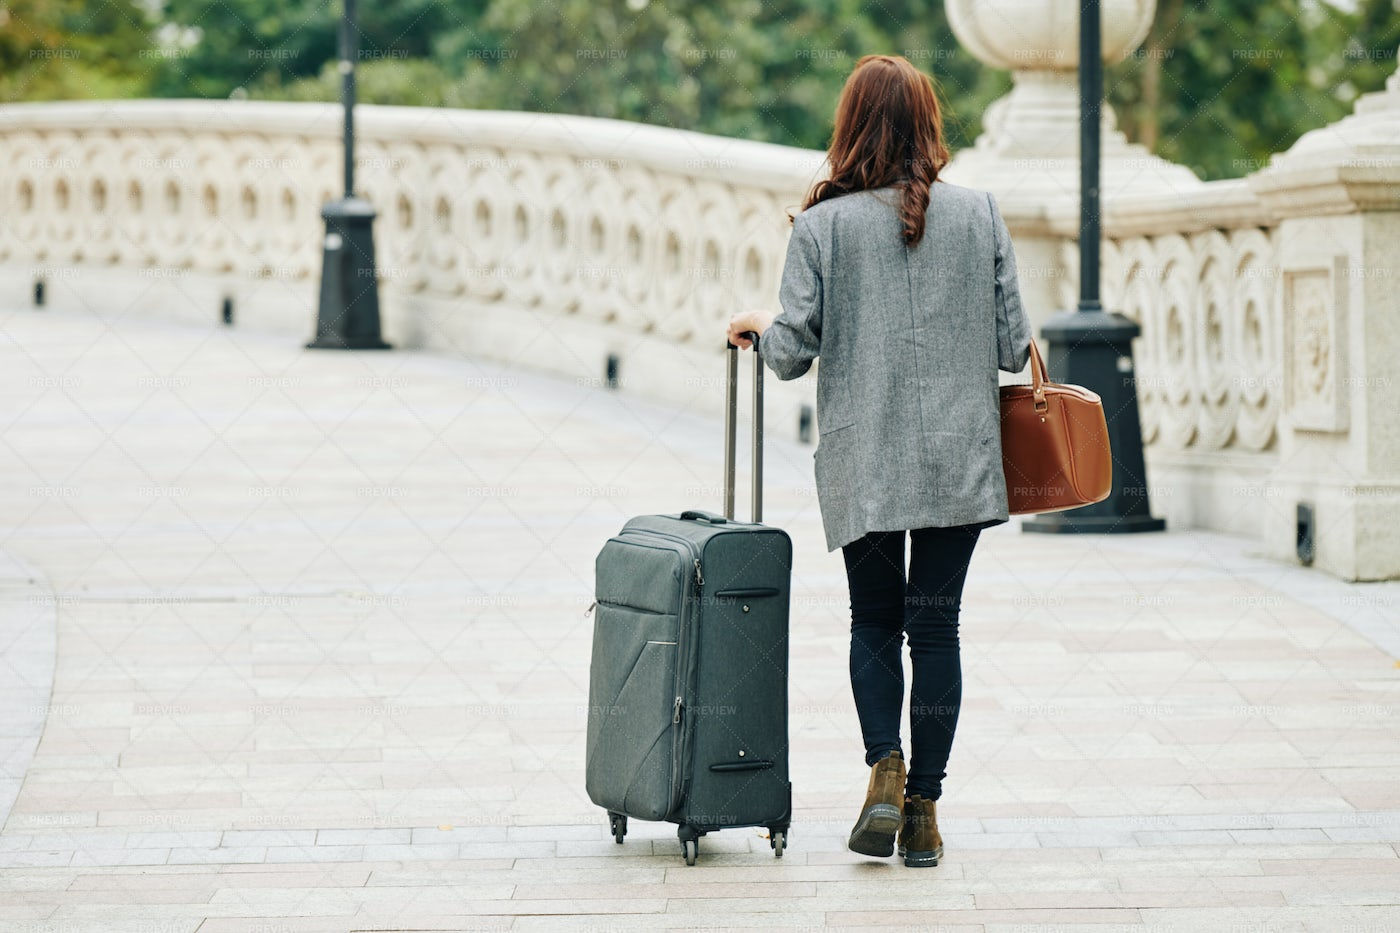 Walking Woman With Big Suitcase: Stock Photos